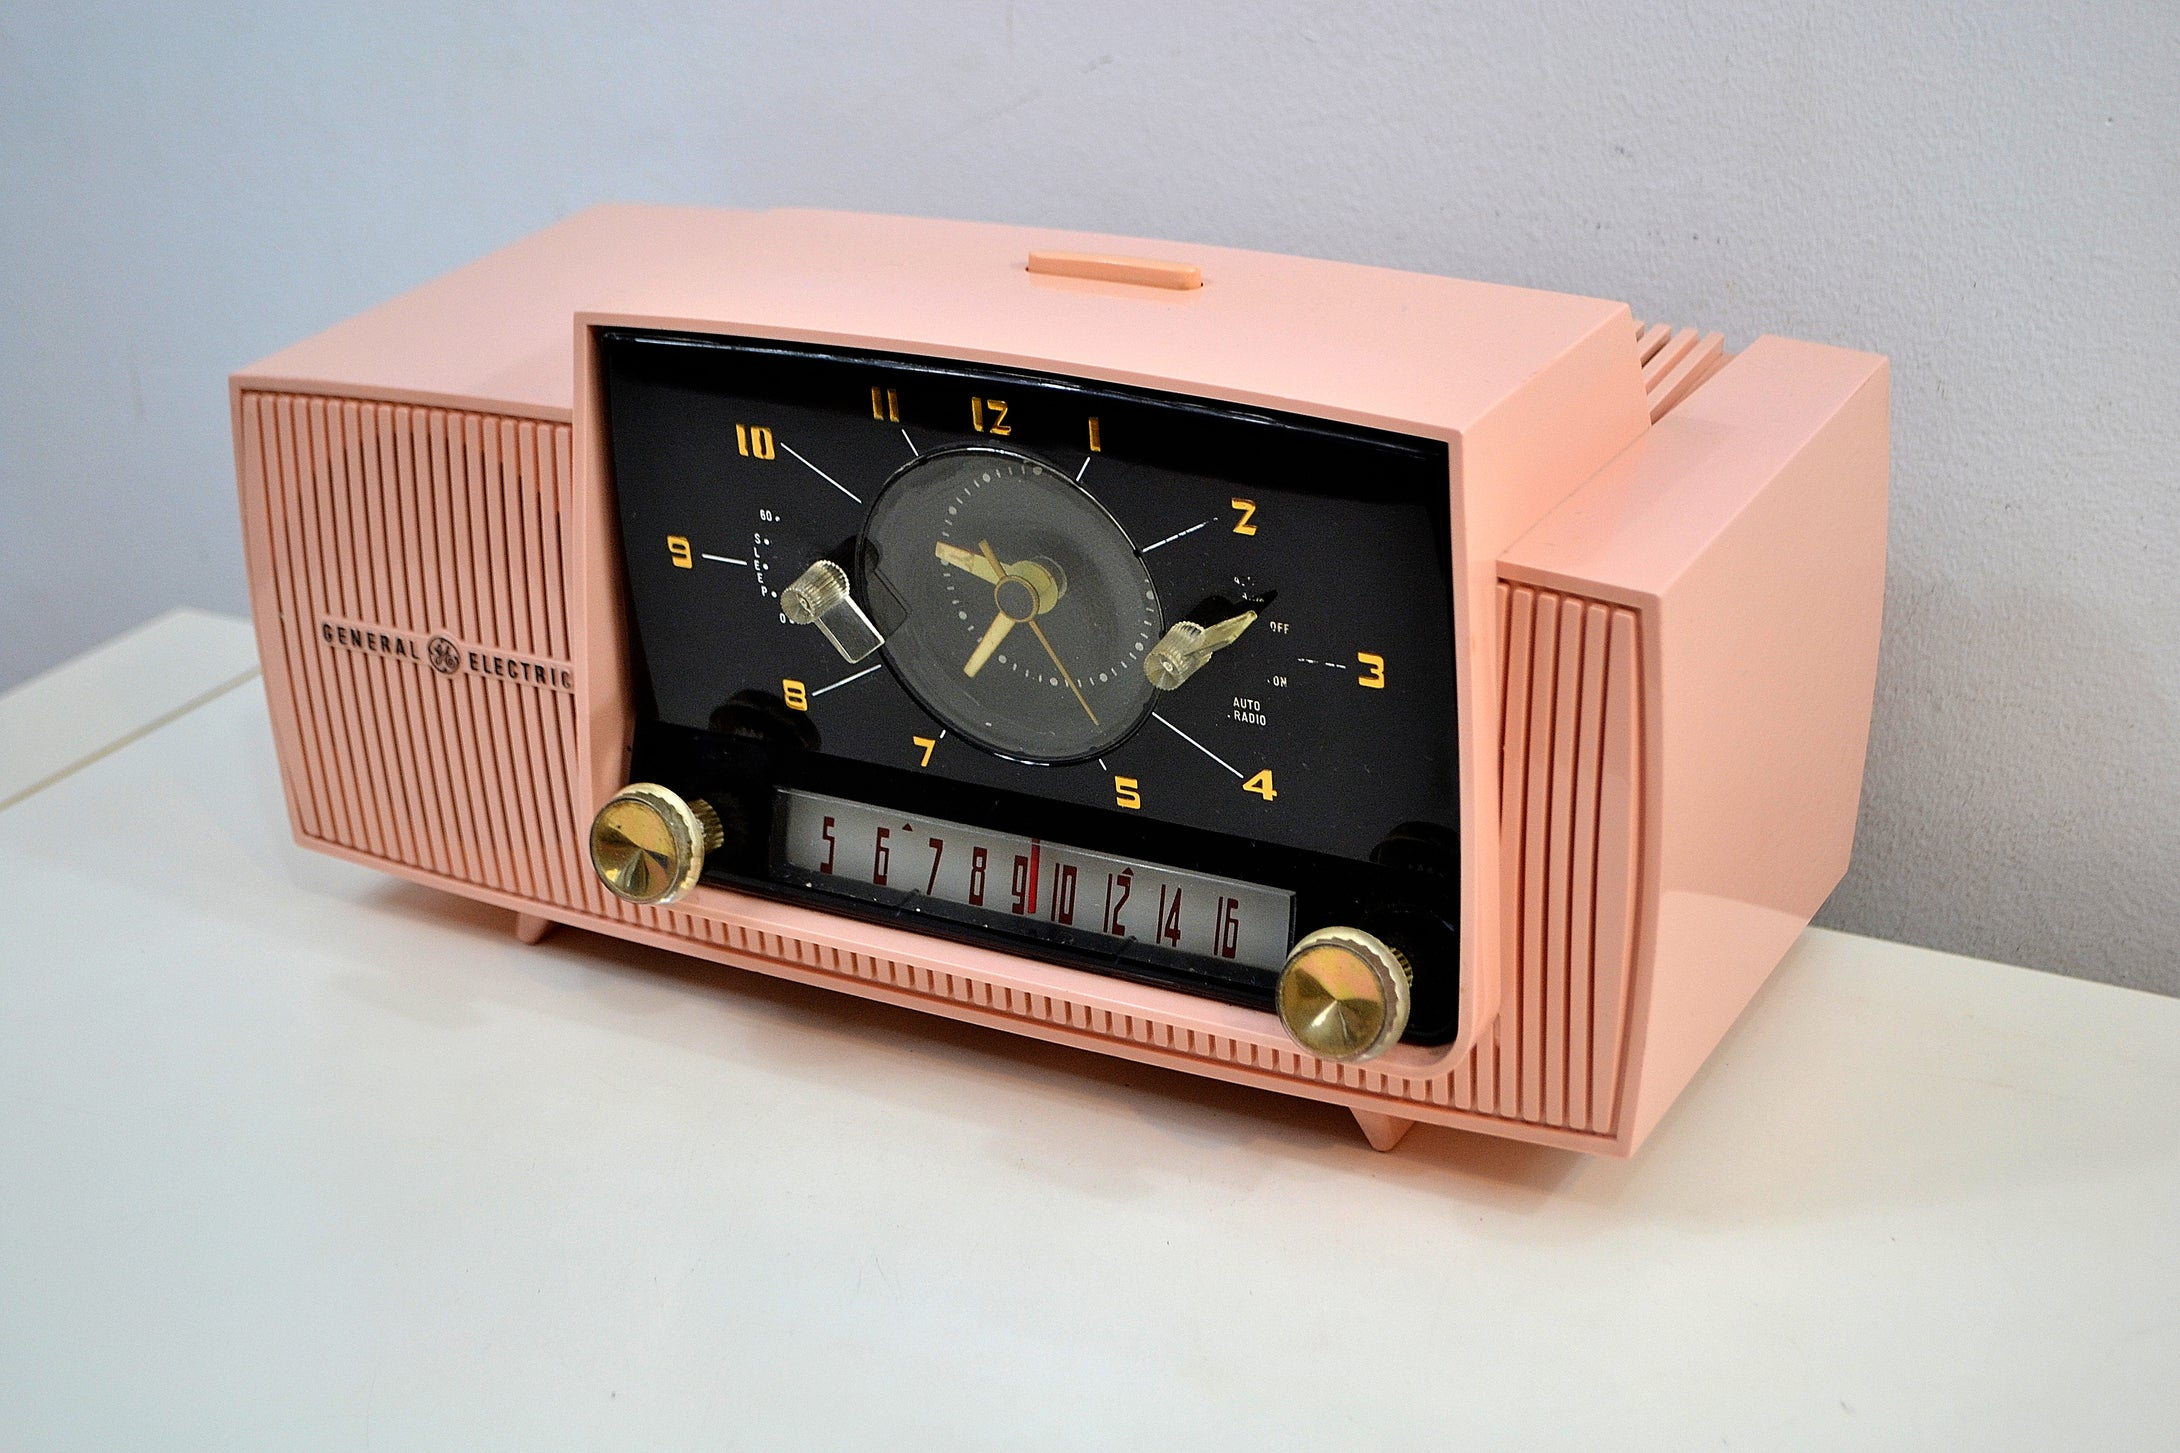 SOLD! - Dec 7, 2019 - Princess Pink 1957 General Electric Model 912D Tube AM Clock Radio Sounds and Looks Lovely! - [product_type} - General Electric - Retro Radio Farm